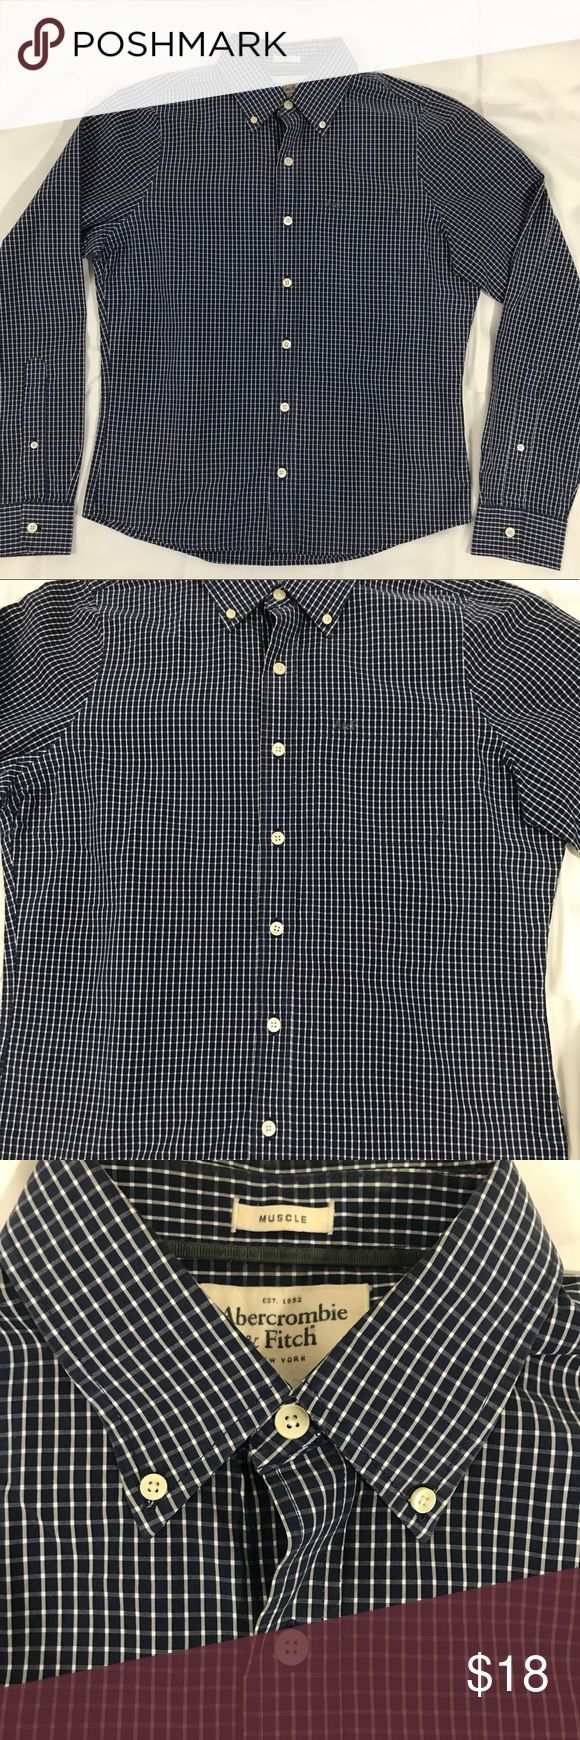 Abercrombie Men's Button Down Abercrombie & Fitch Men's Button Down. Muscle Fit. Blue and white plaid . Excellent condition Abercrombie & Fitch Shirts Casual Button Down Shirts